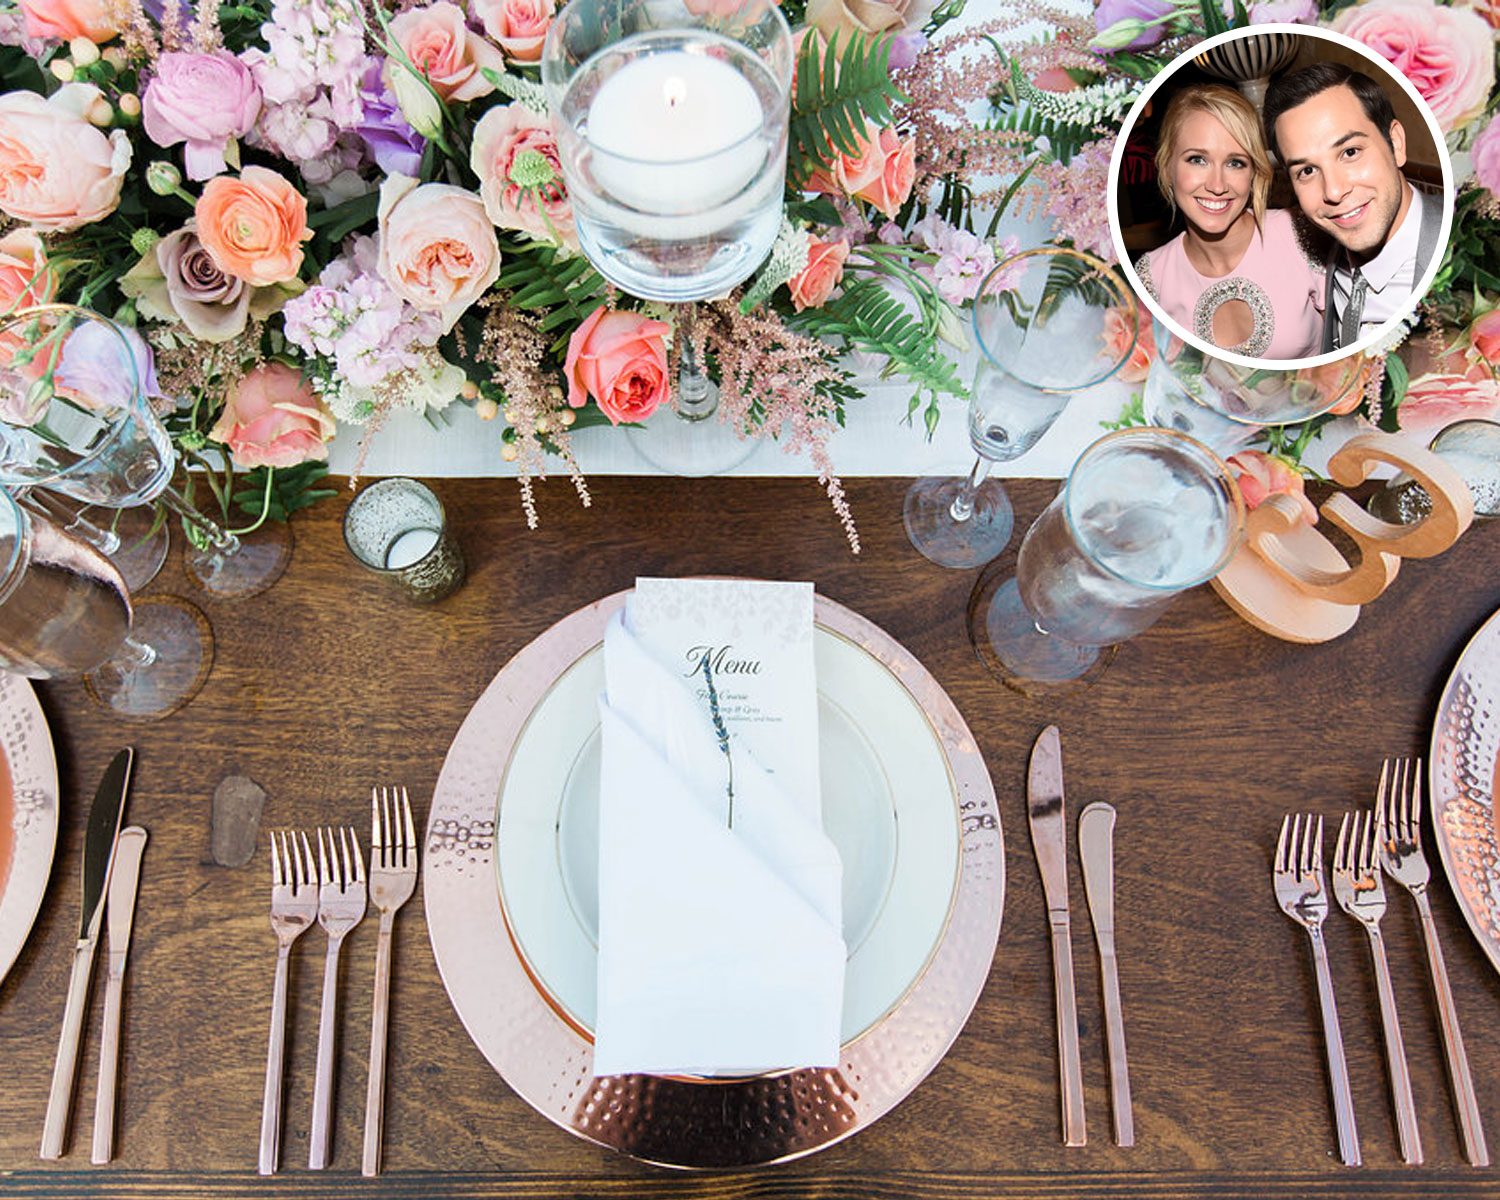 Anna Camp Skylar Astin wedding menu